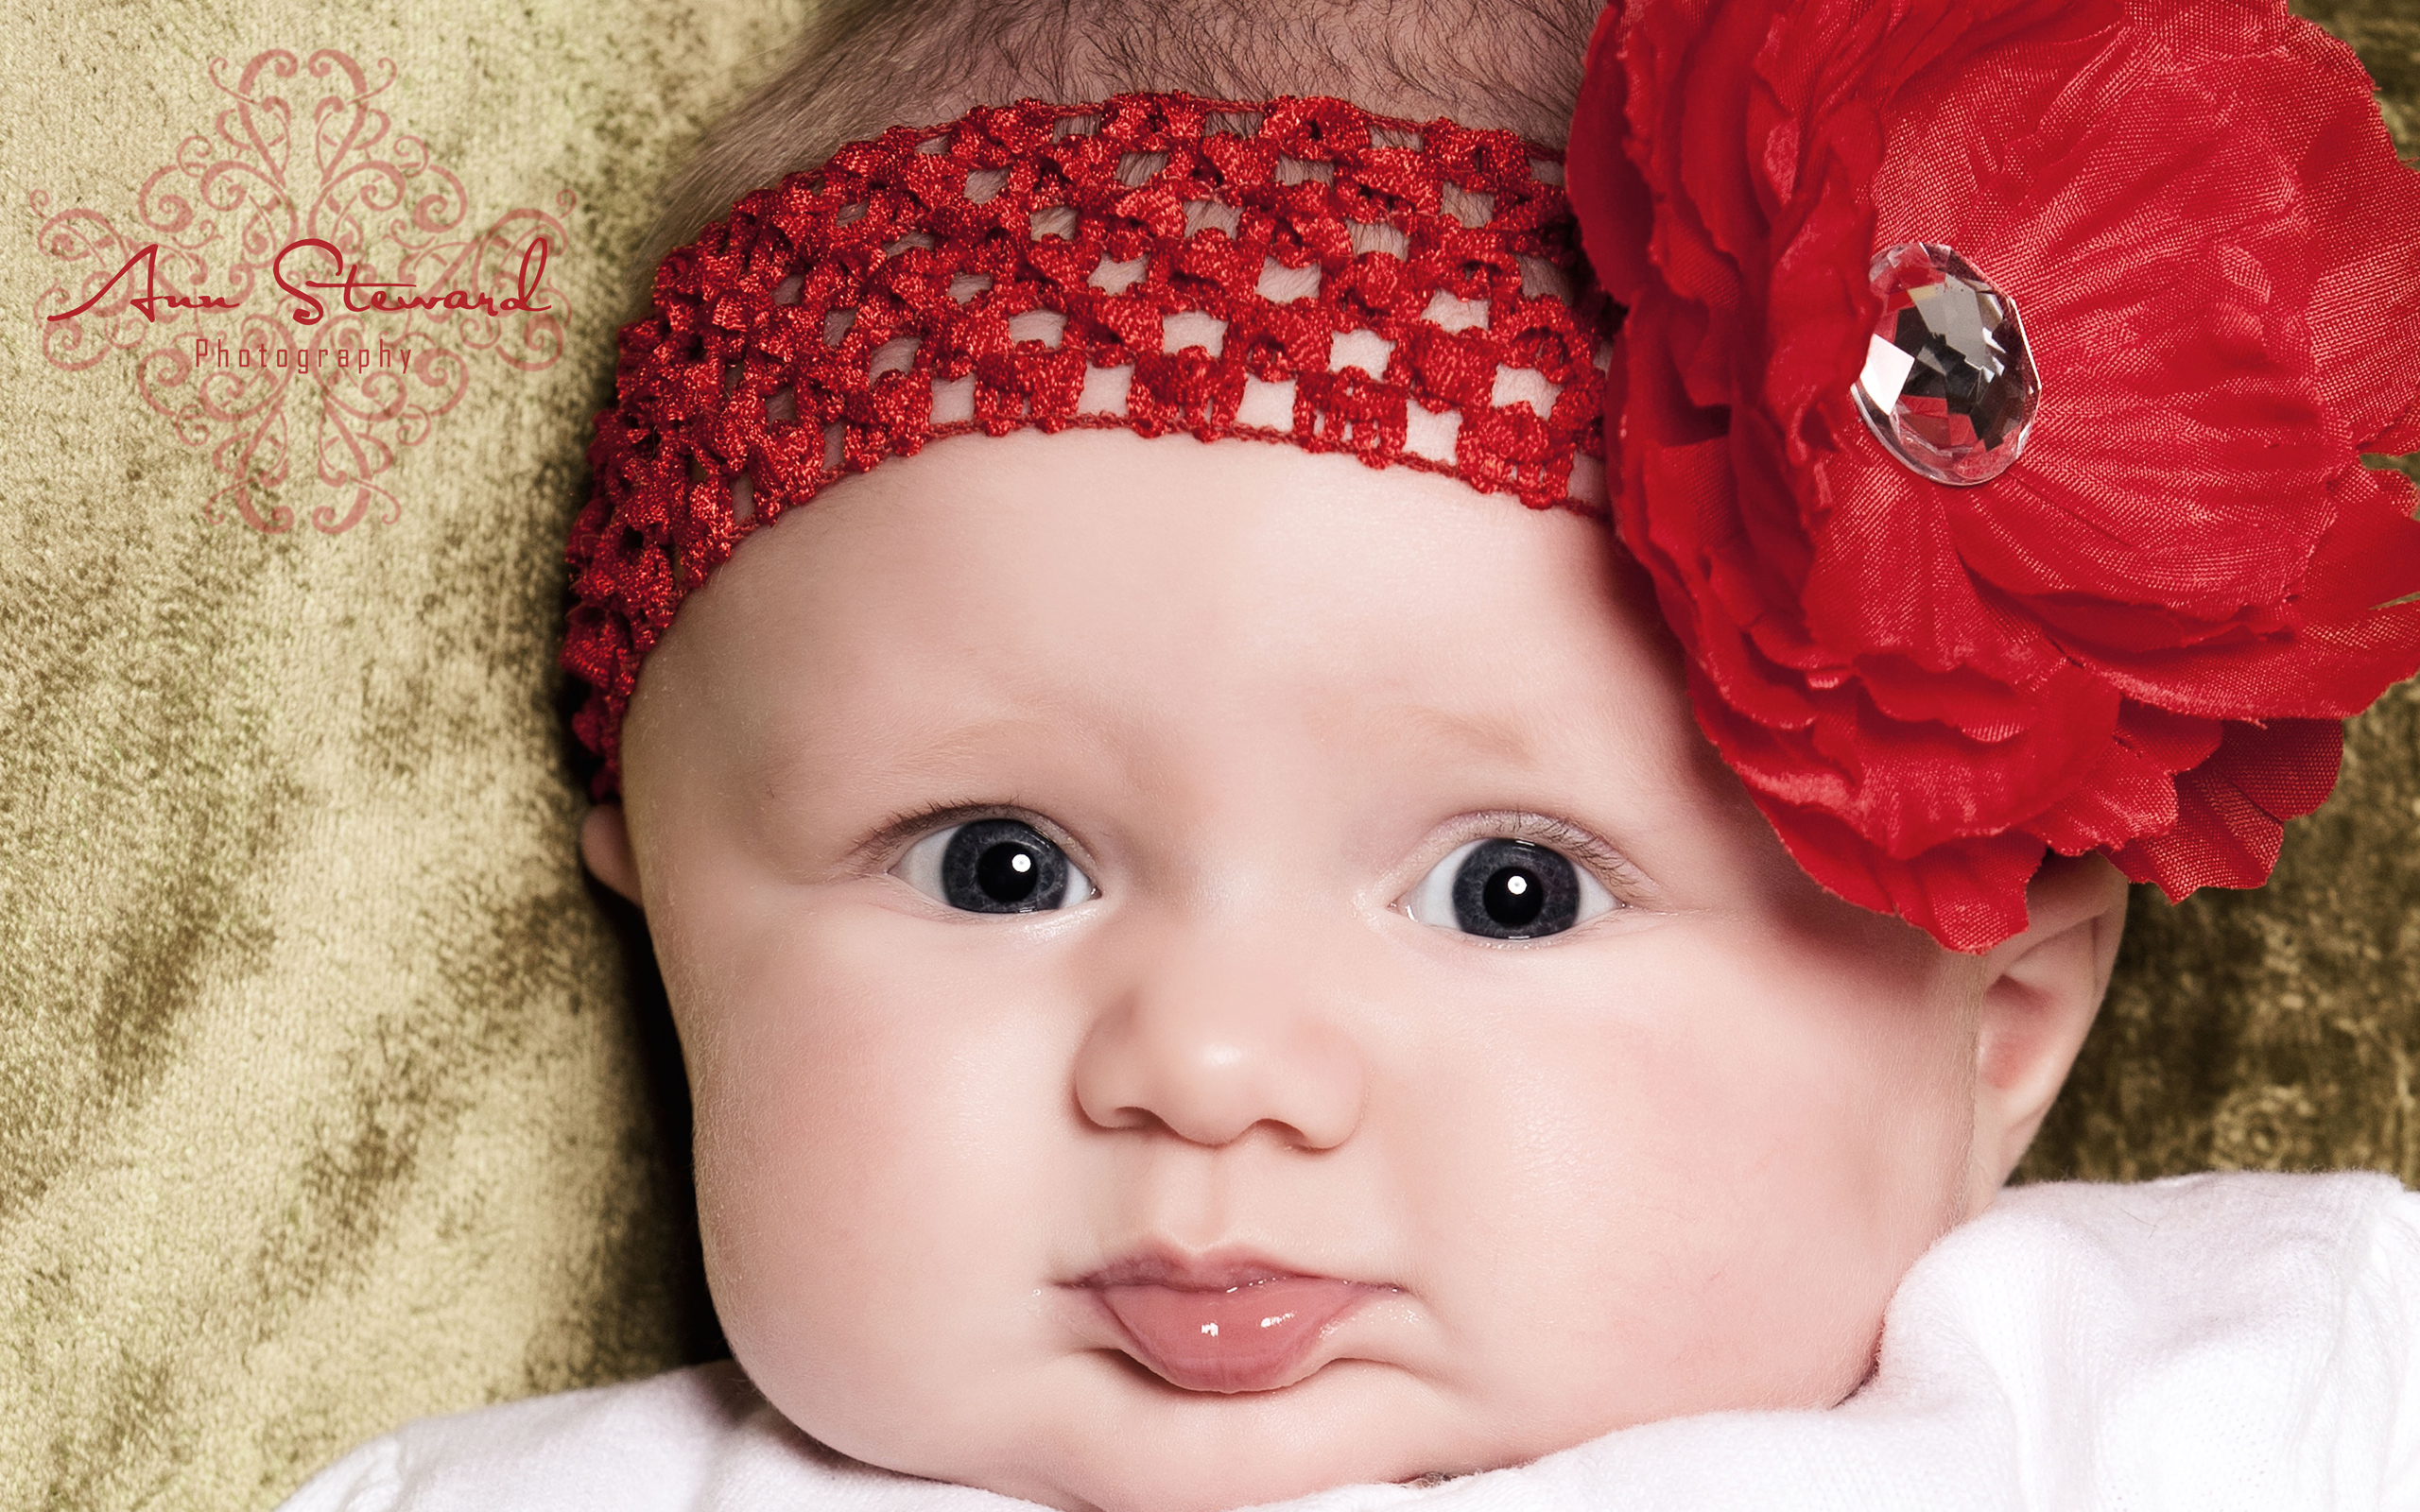 To download or set this free most beautiful baby girl wallpaper as.